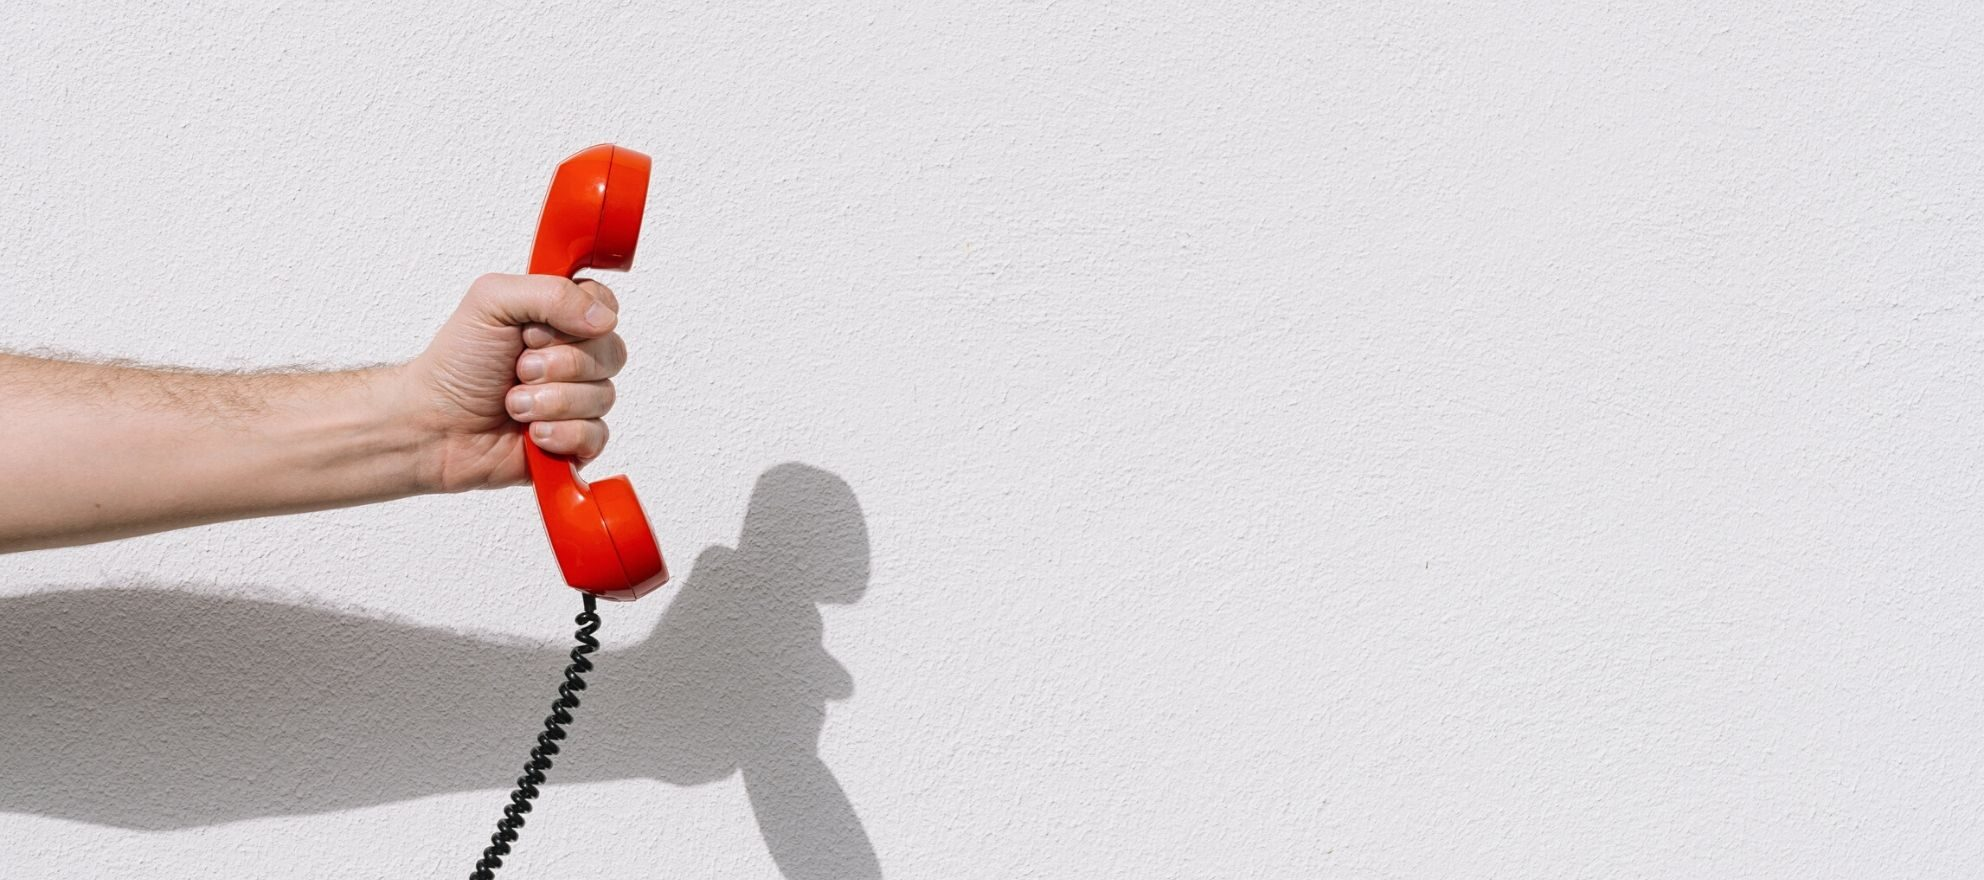 how to respond to please don't call me again in real estate